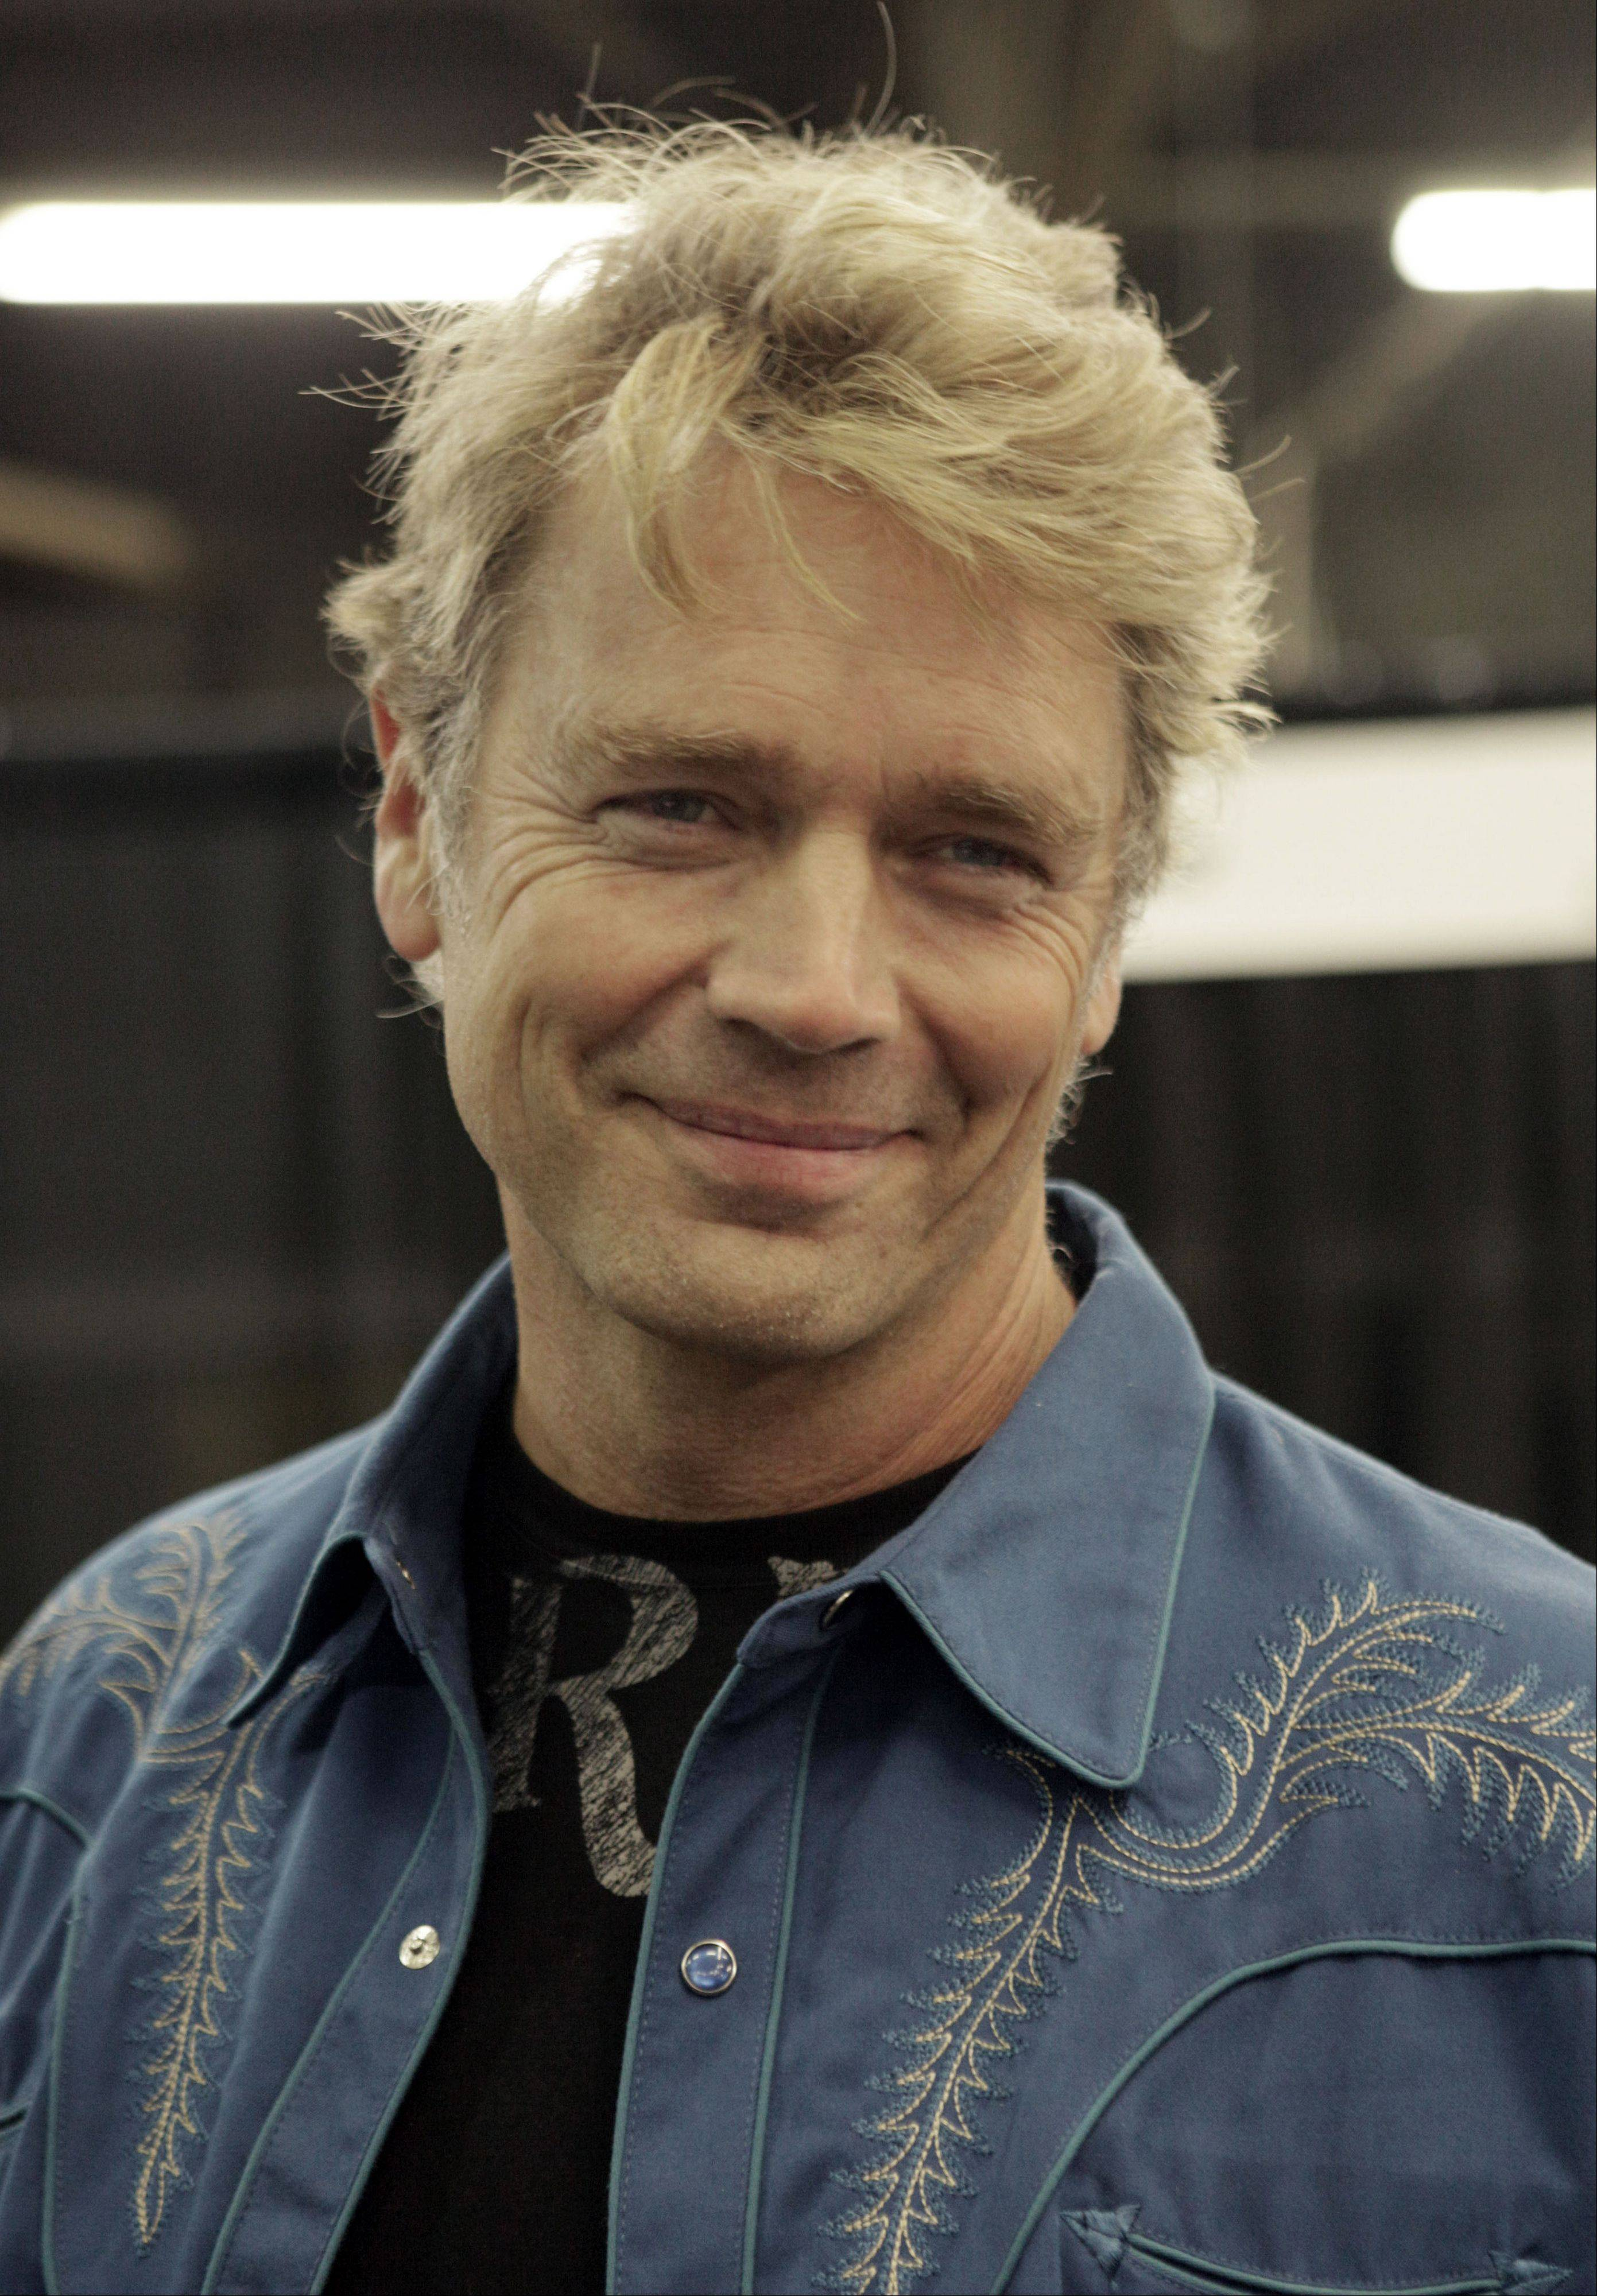 Actor John Schneider from the television series Dukes of Hazard.